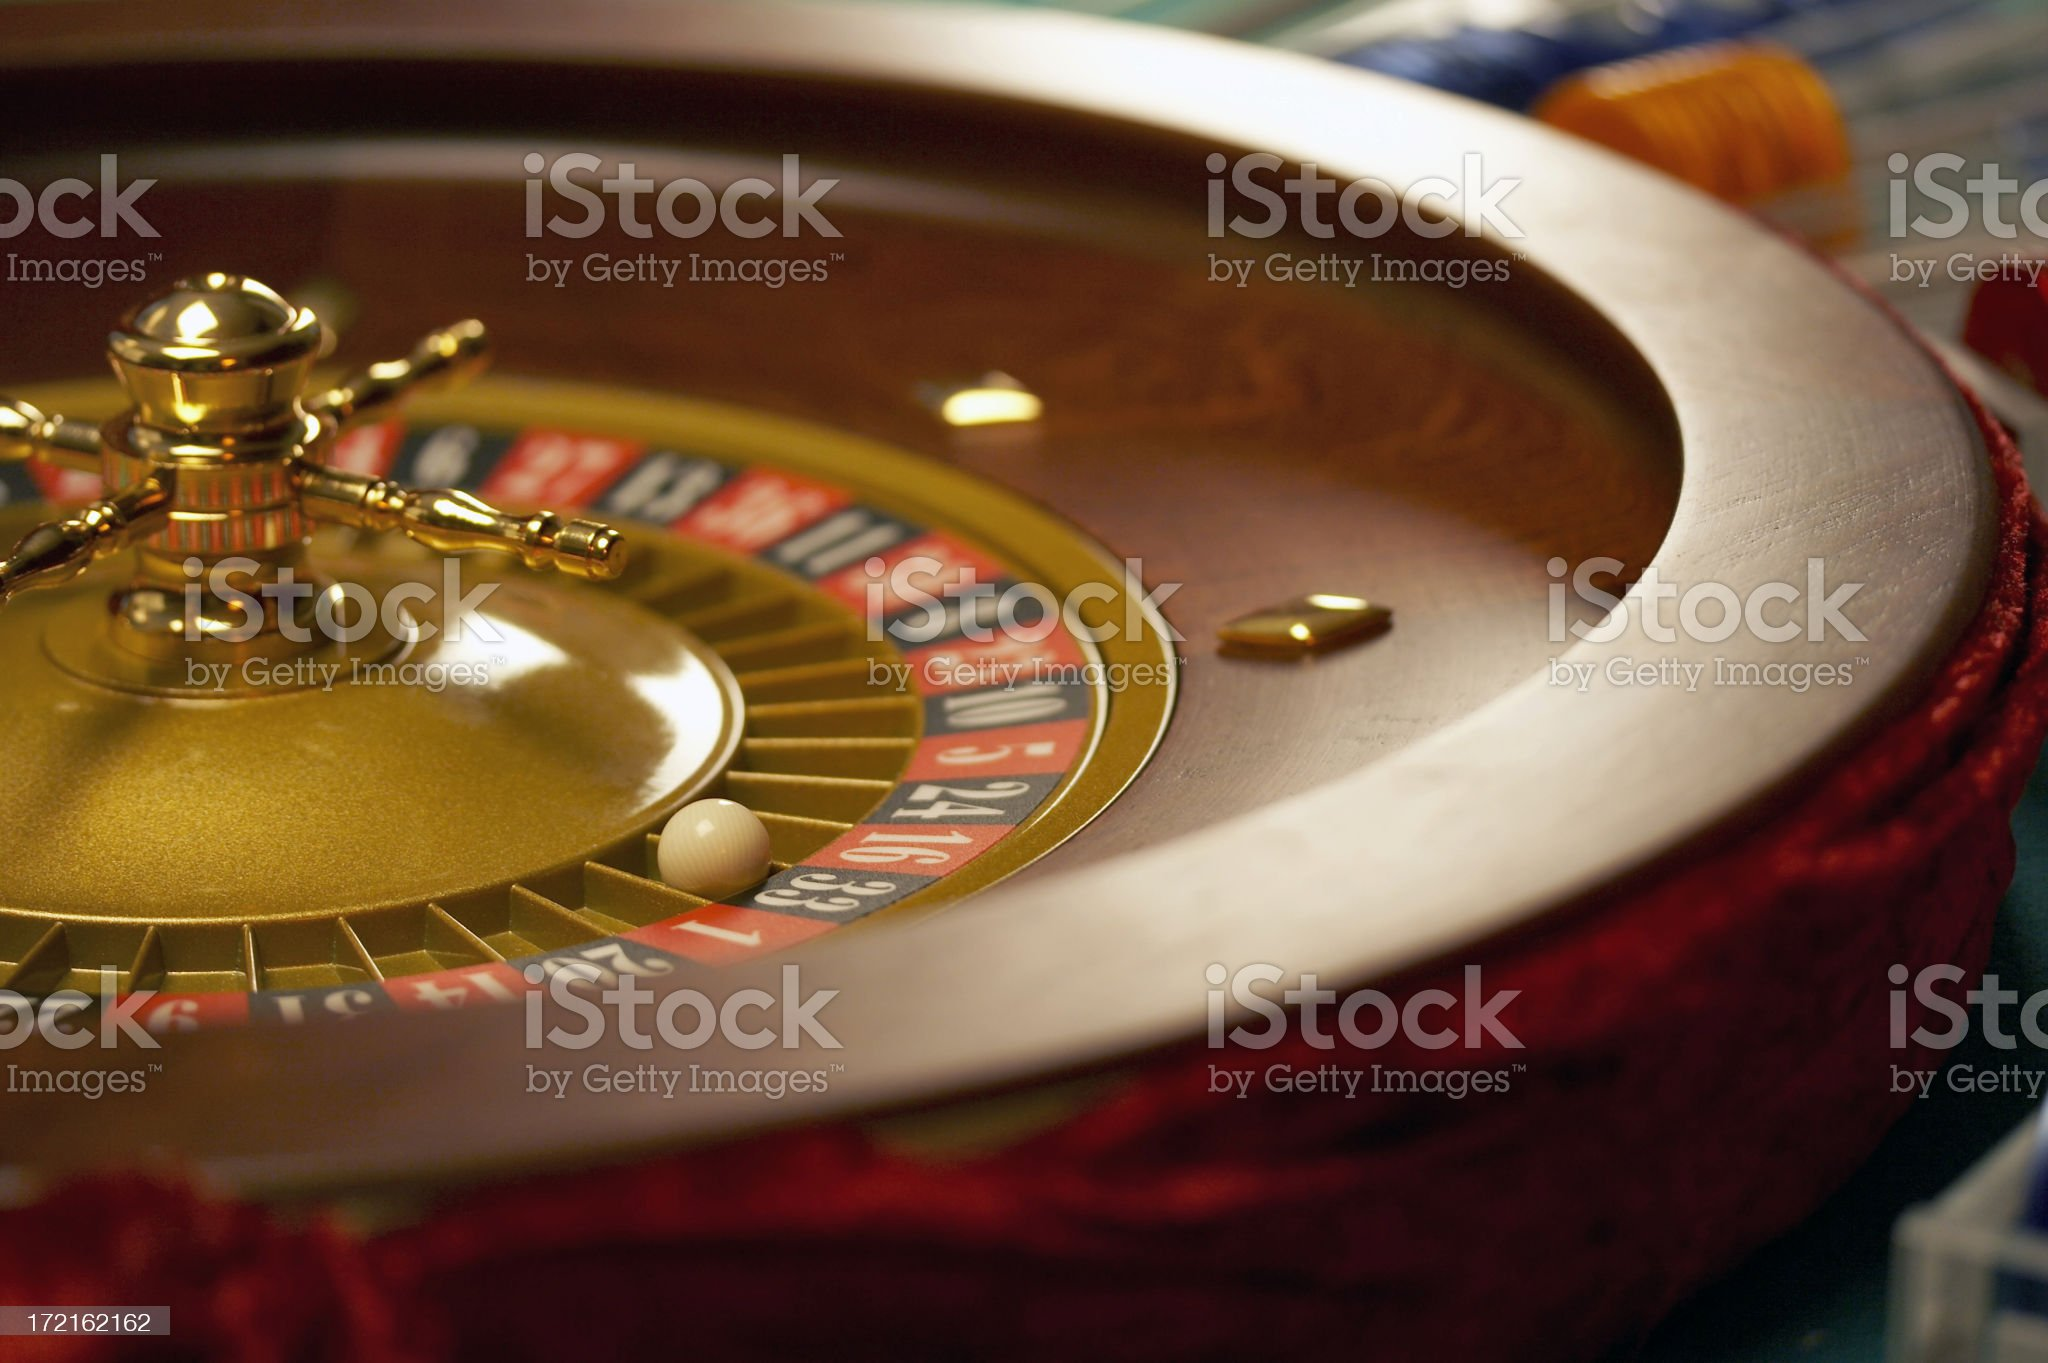 Roulette wheel - 33 Black royalty-free stock photo